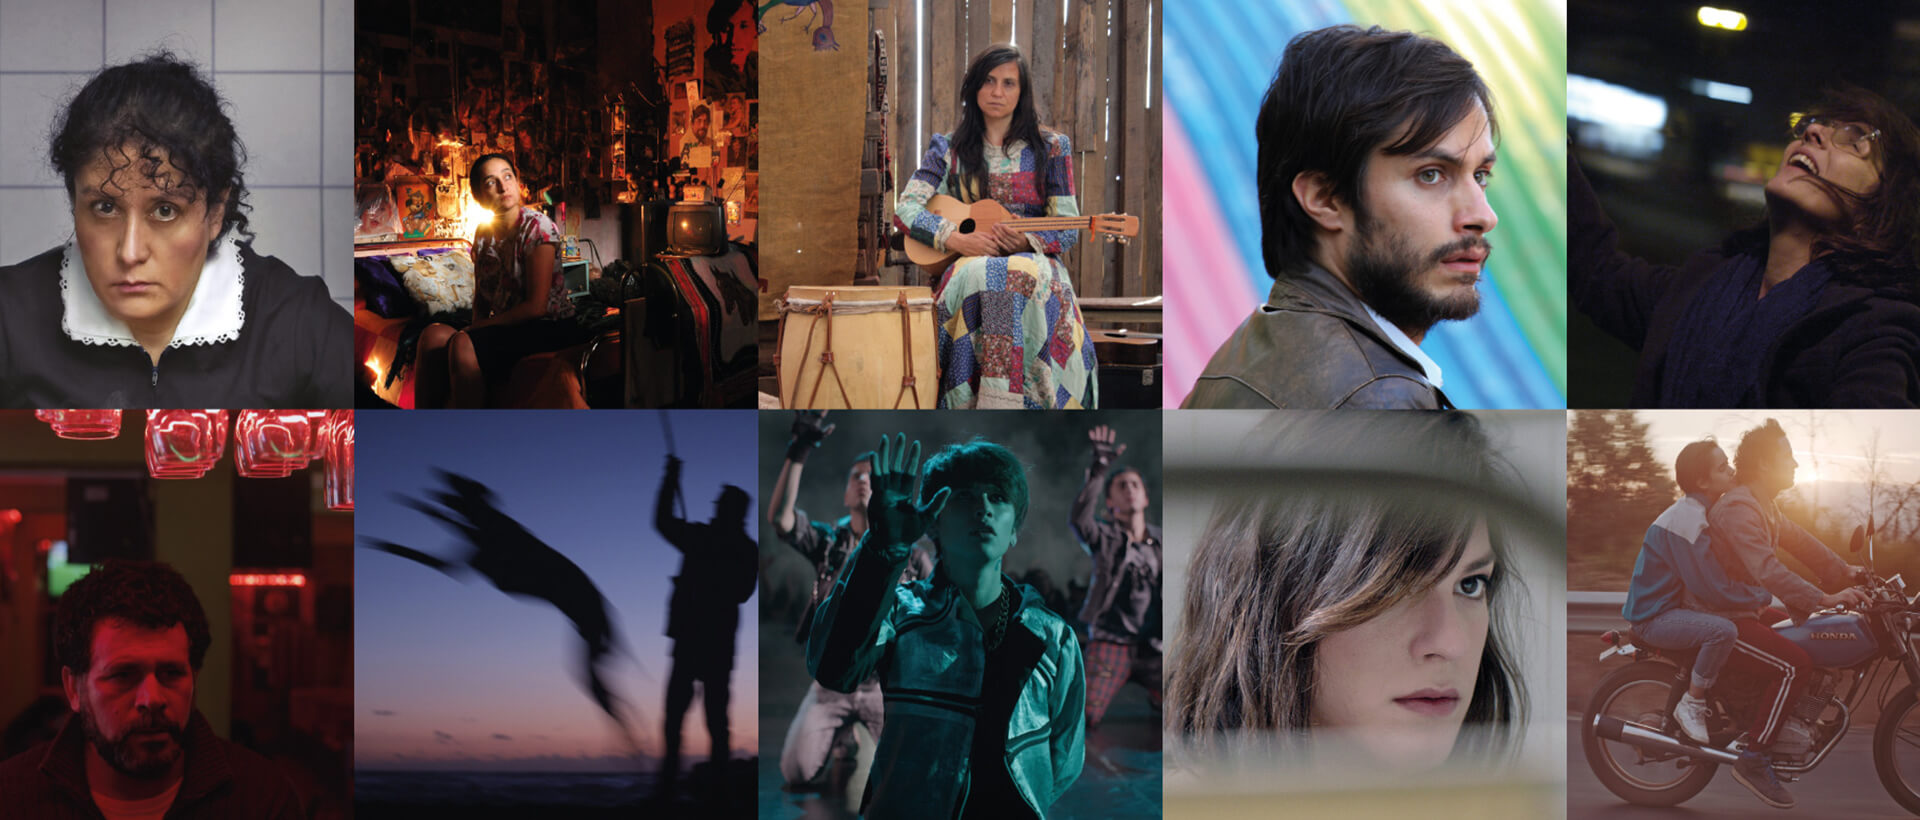 Week of Chilean Cinema in Madrid will be presented by its great protagonists